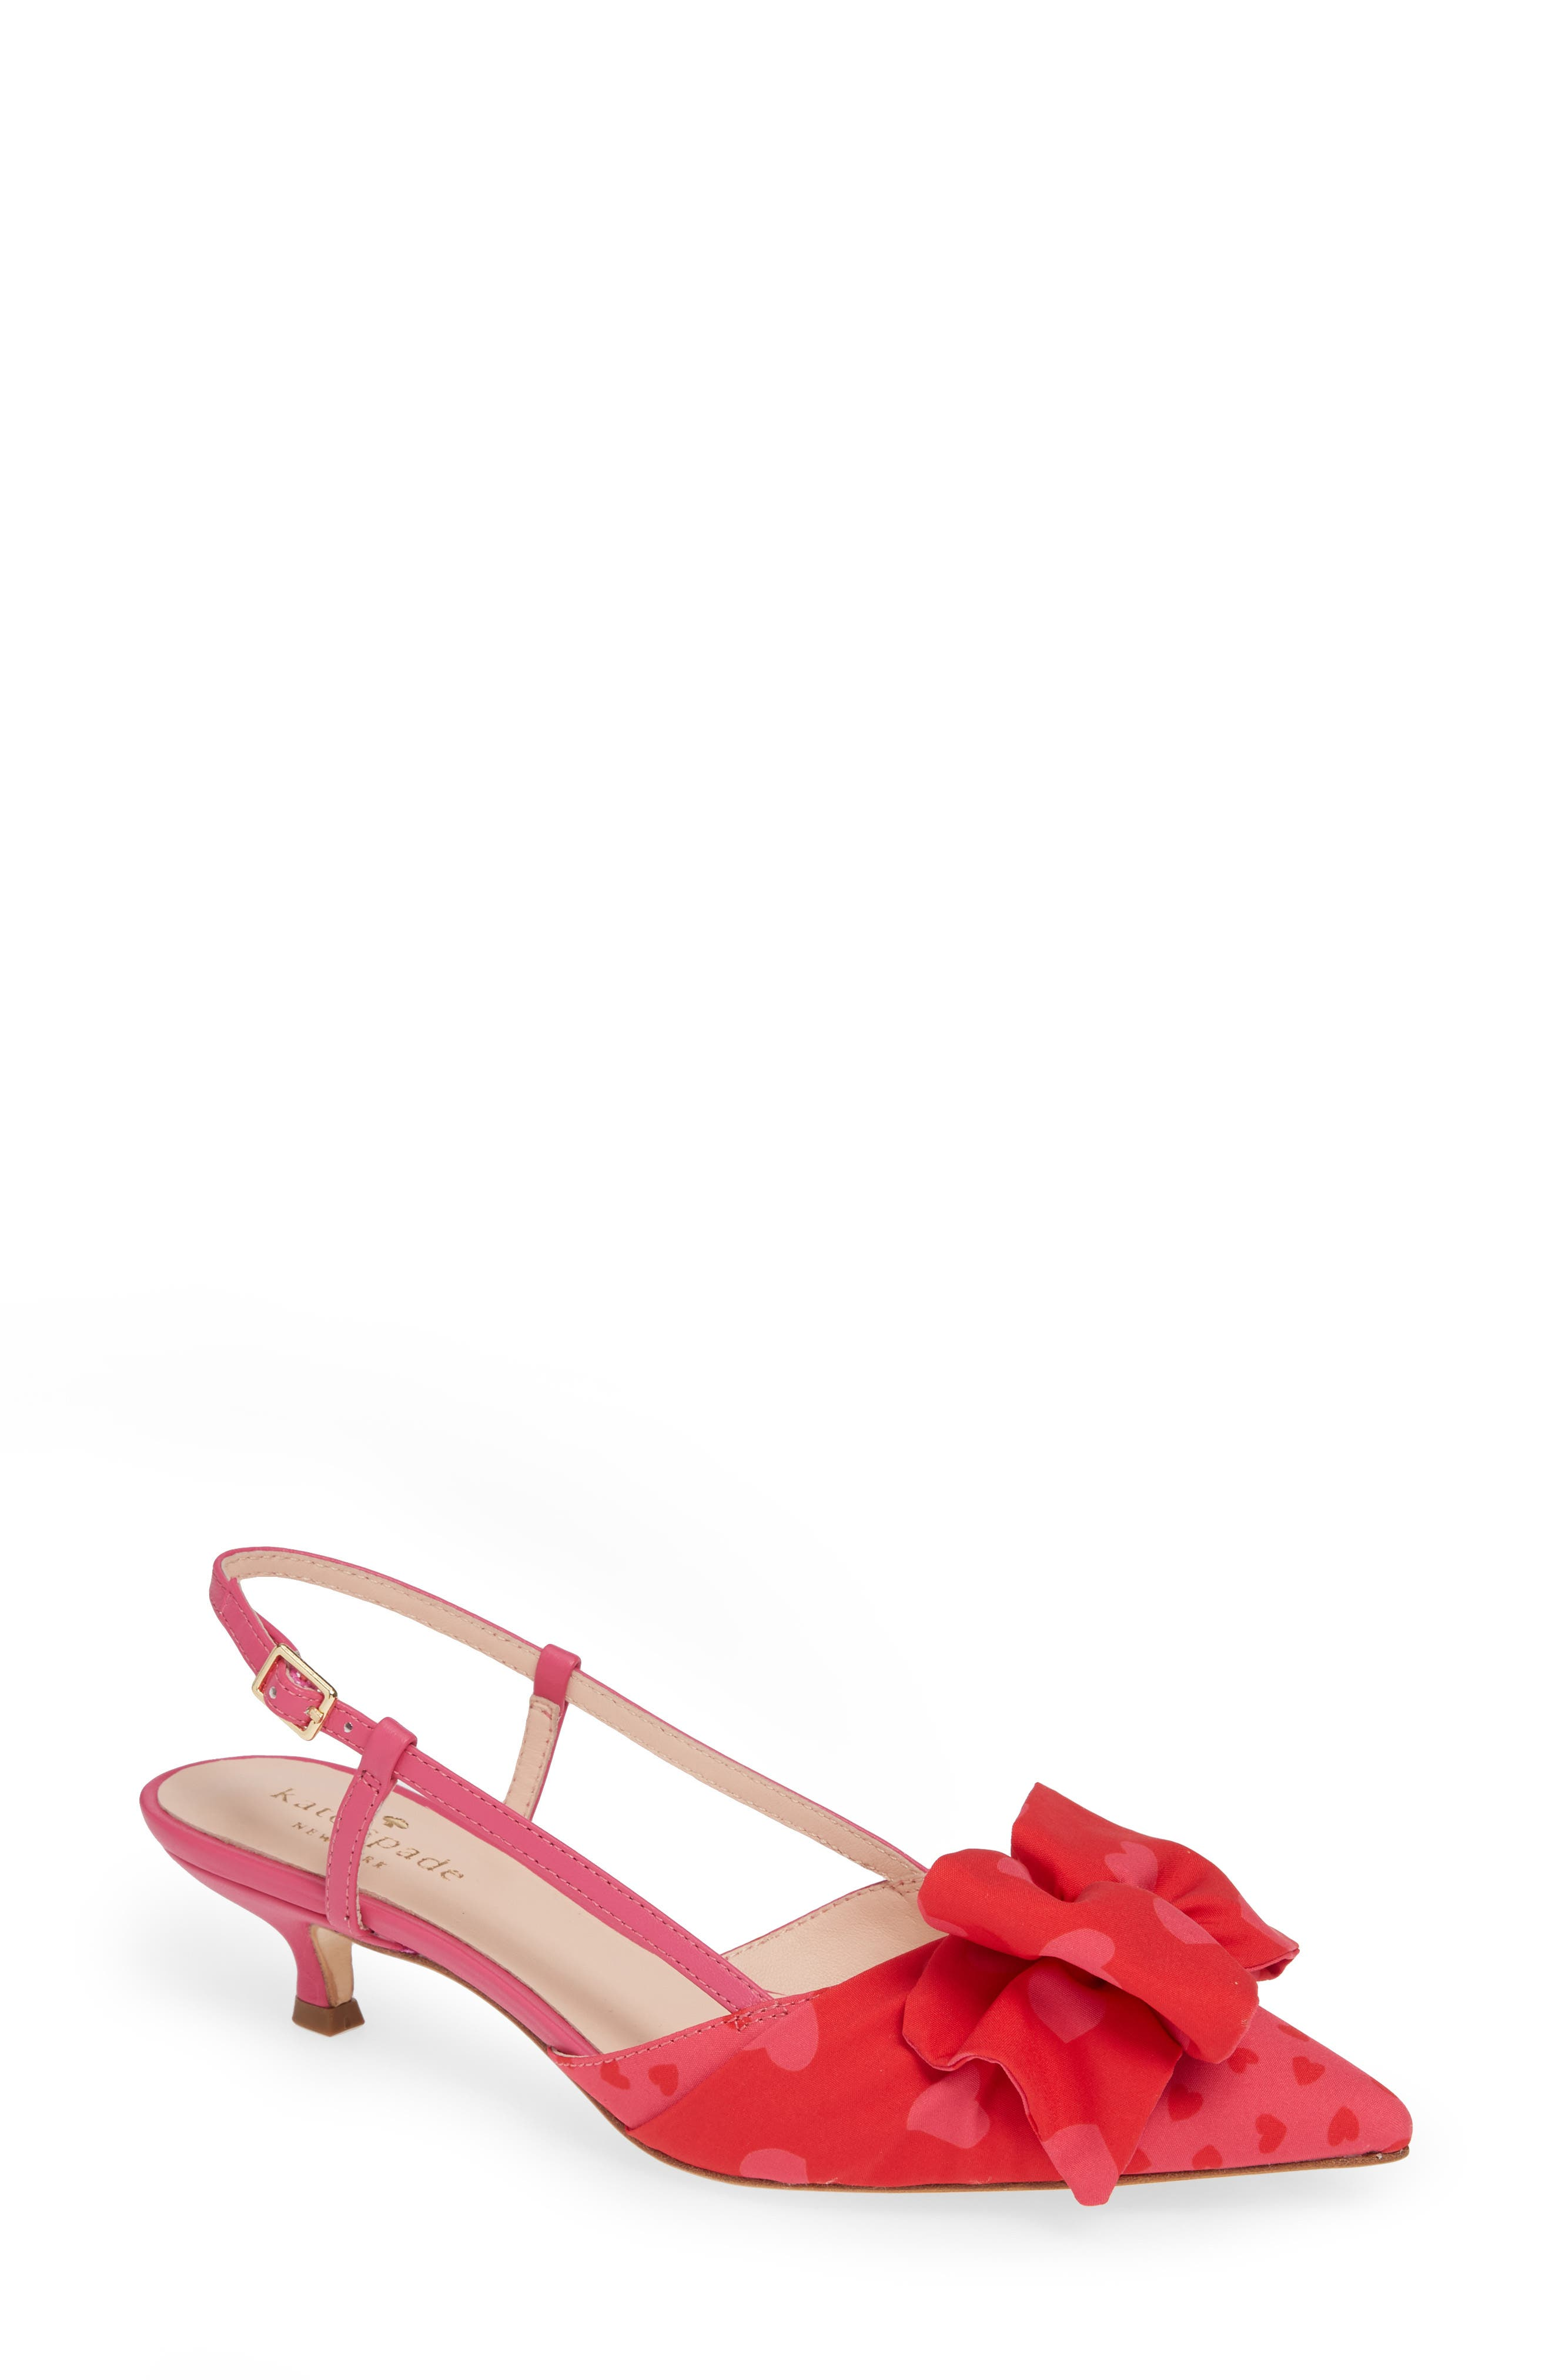 daxton slingback pump,                         Main,                         color, BEGONIA/ ENGINE RED HEART